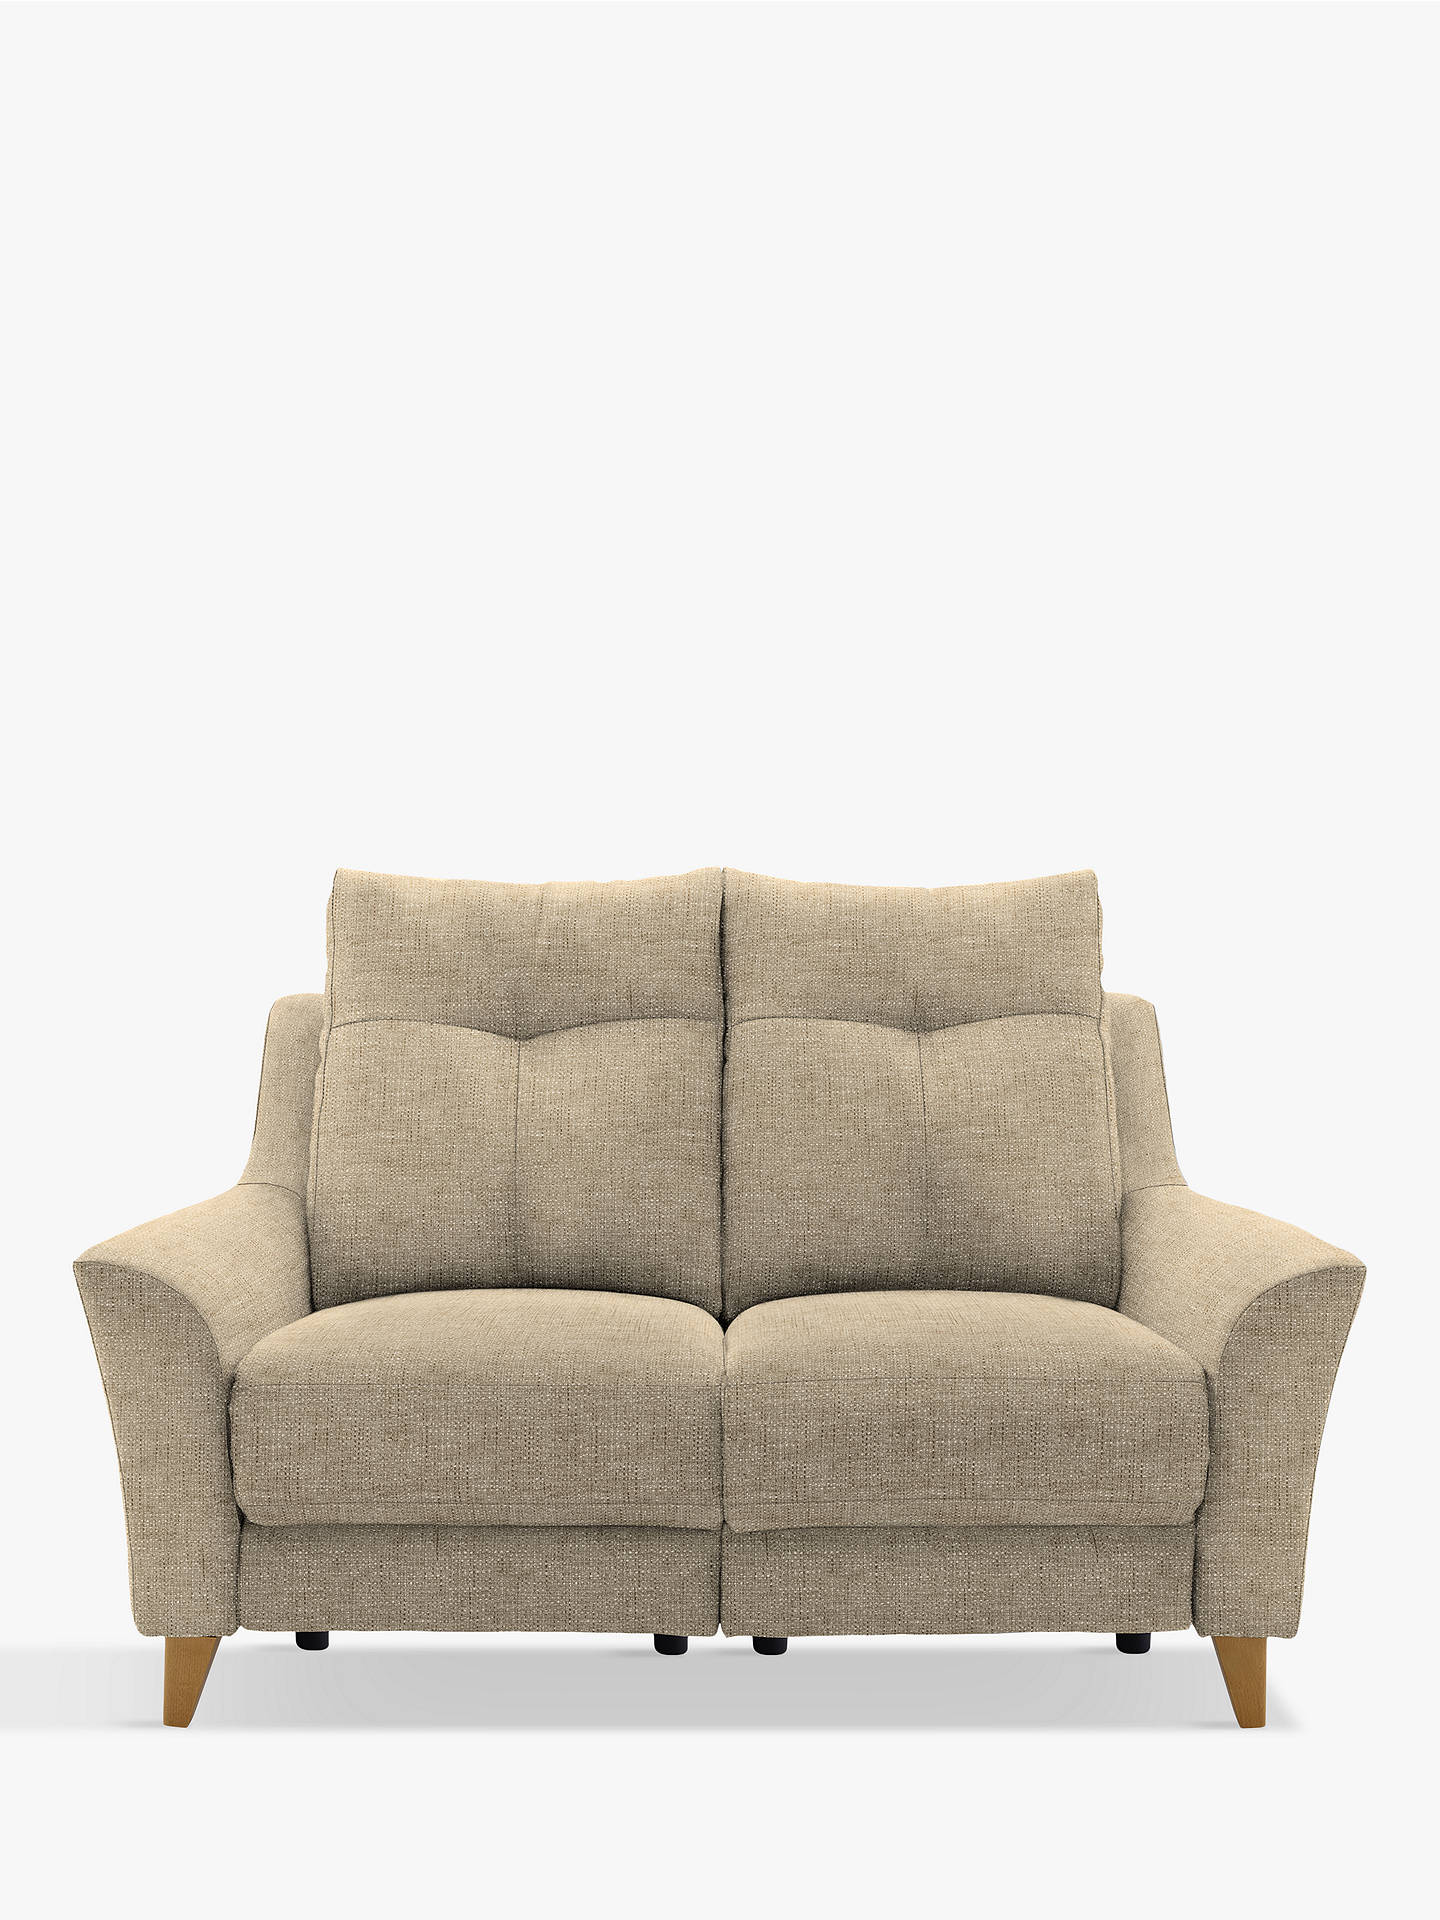 G Plan Hirst Power Recliner Small 2 Seater Sofa Reed